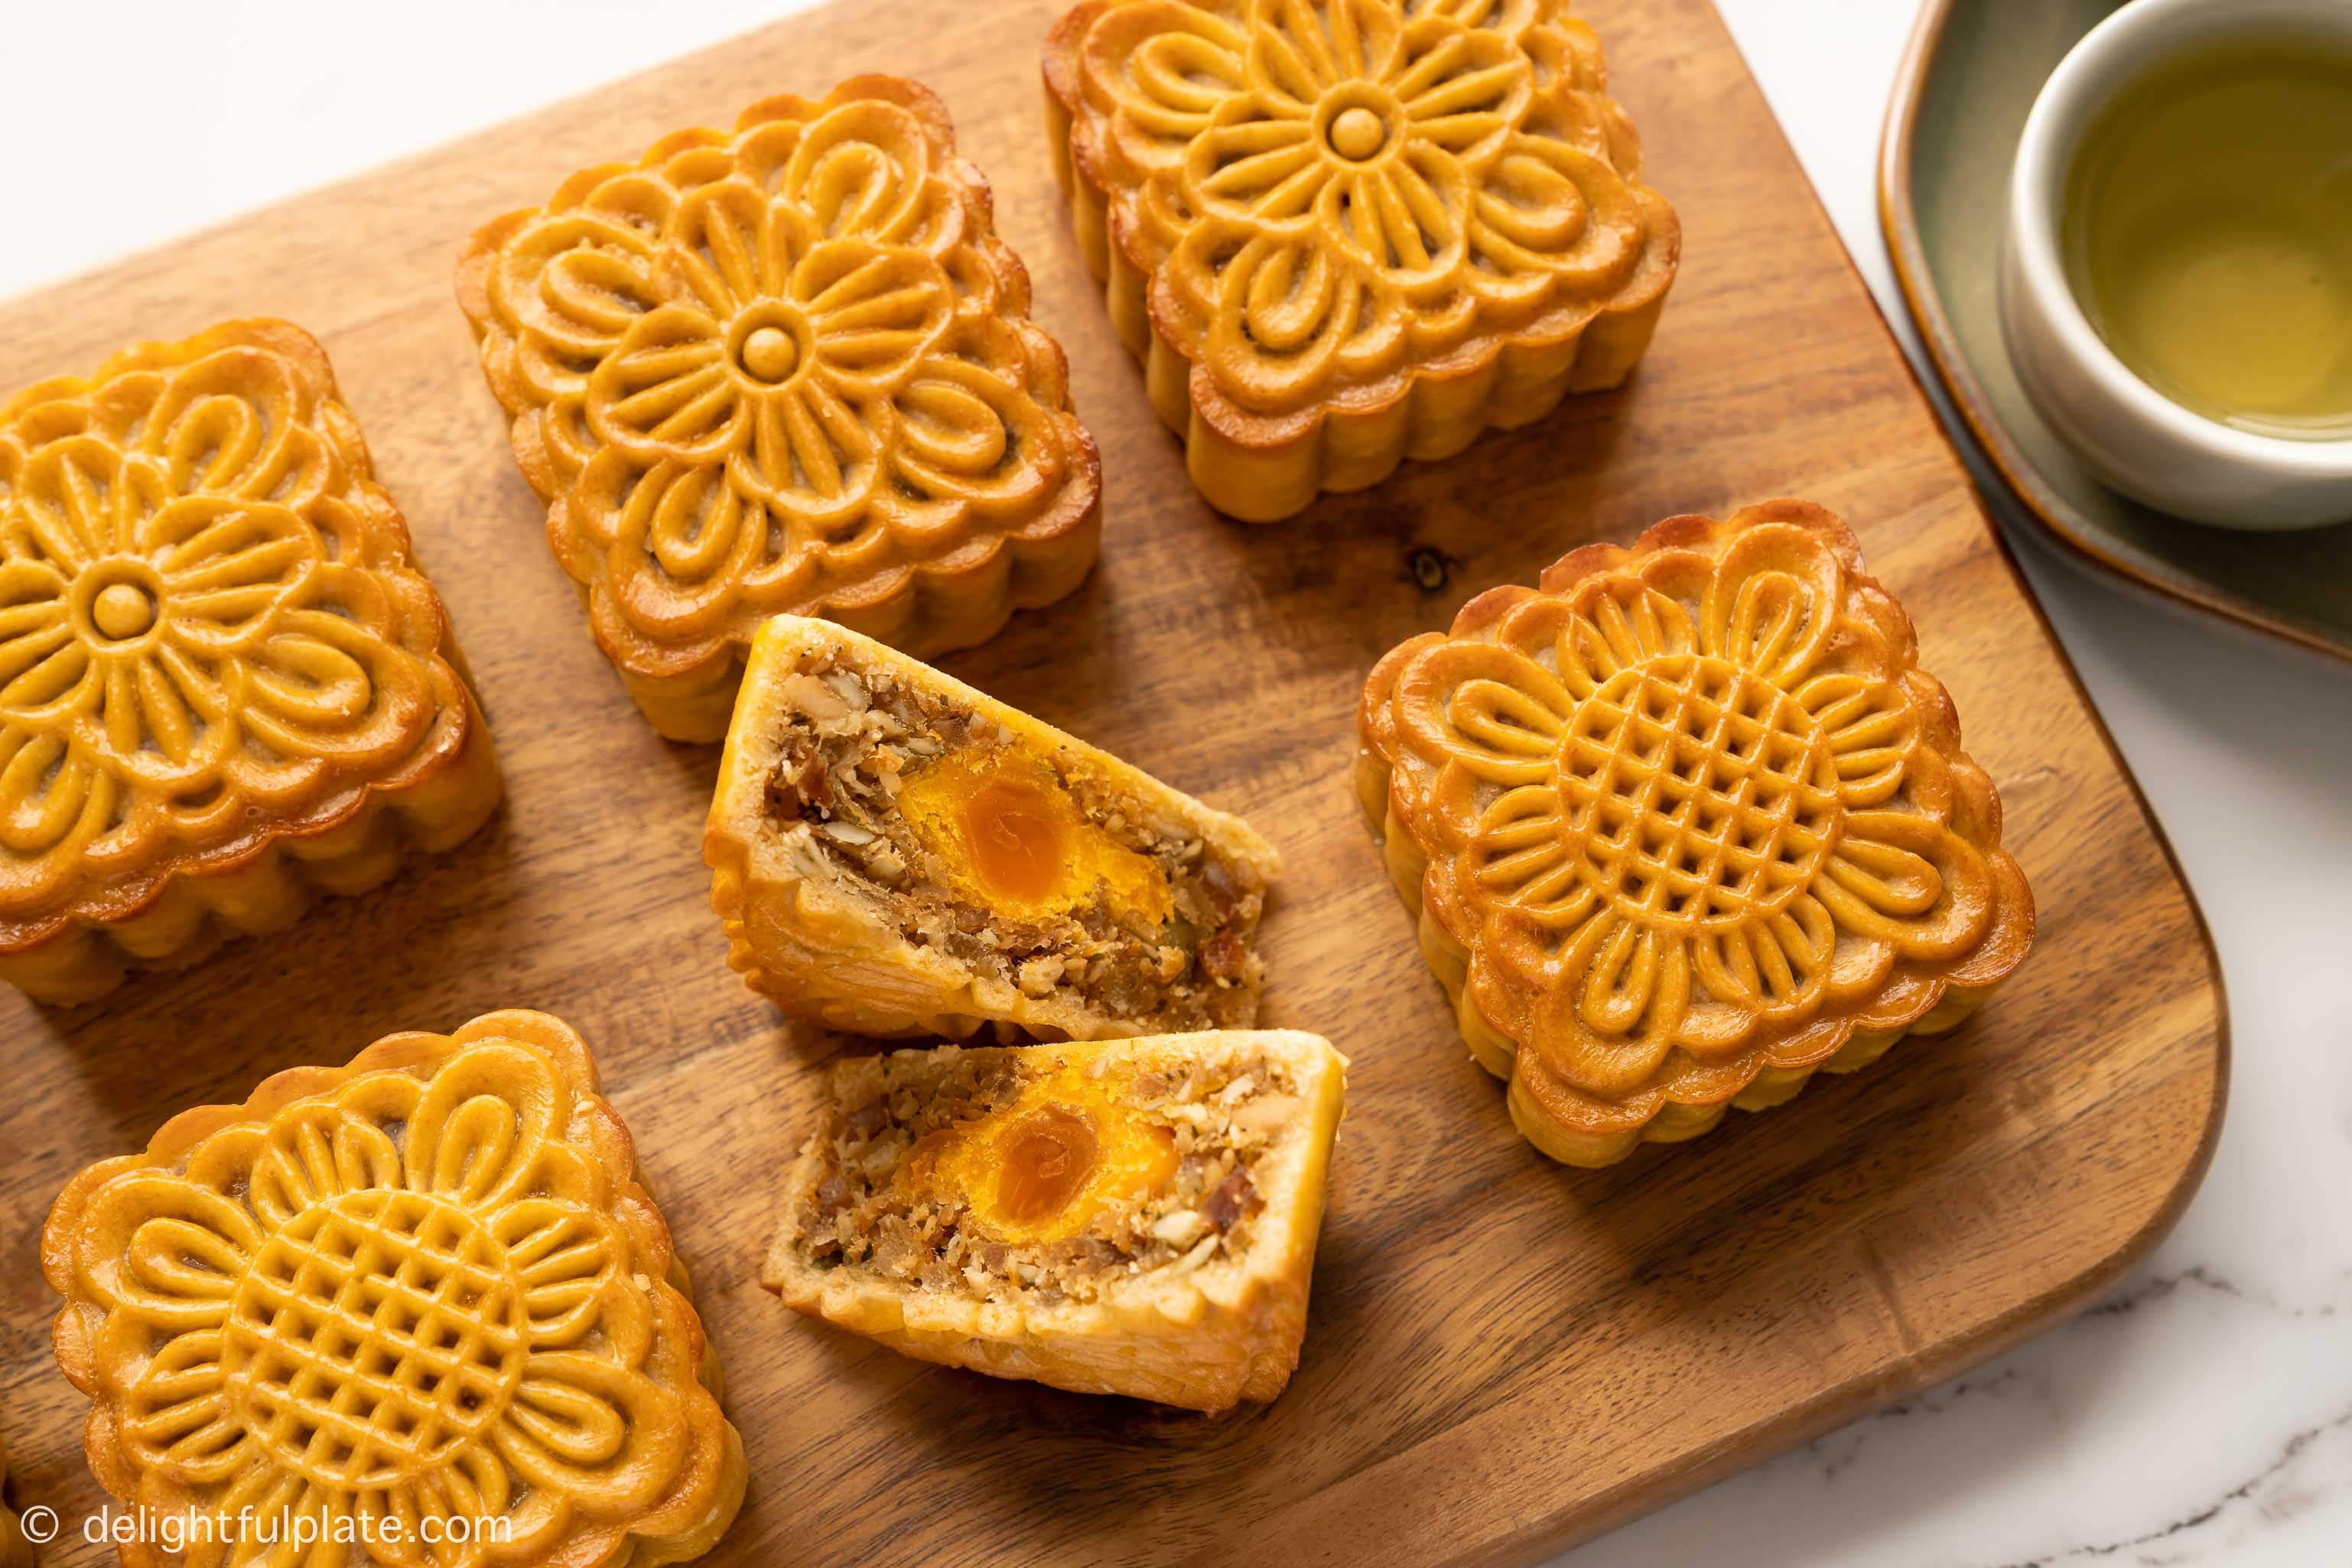 a cut slice of Vietnamese mooncakes with mixed nuts